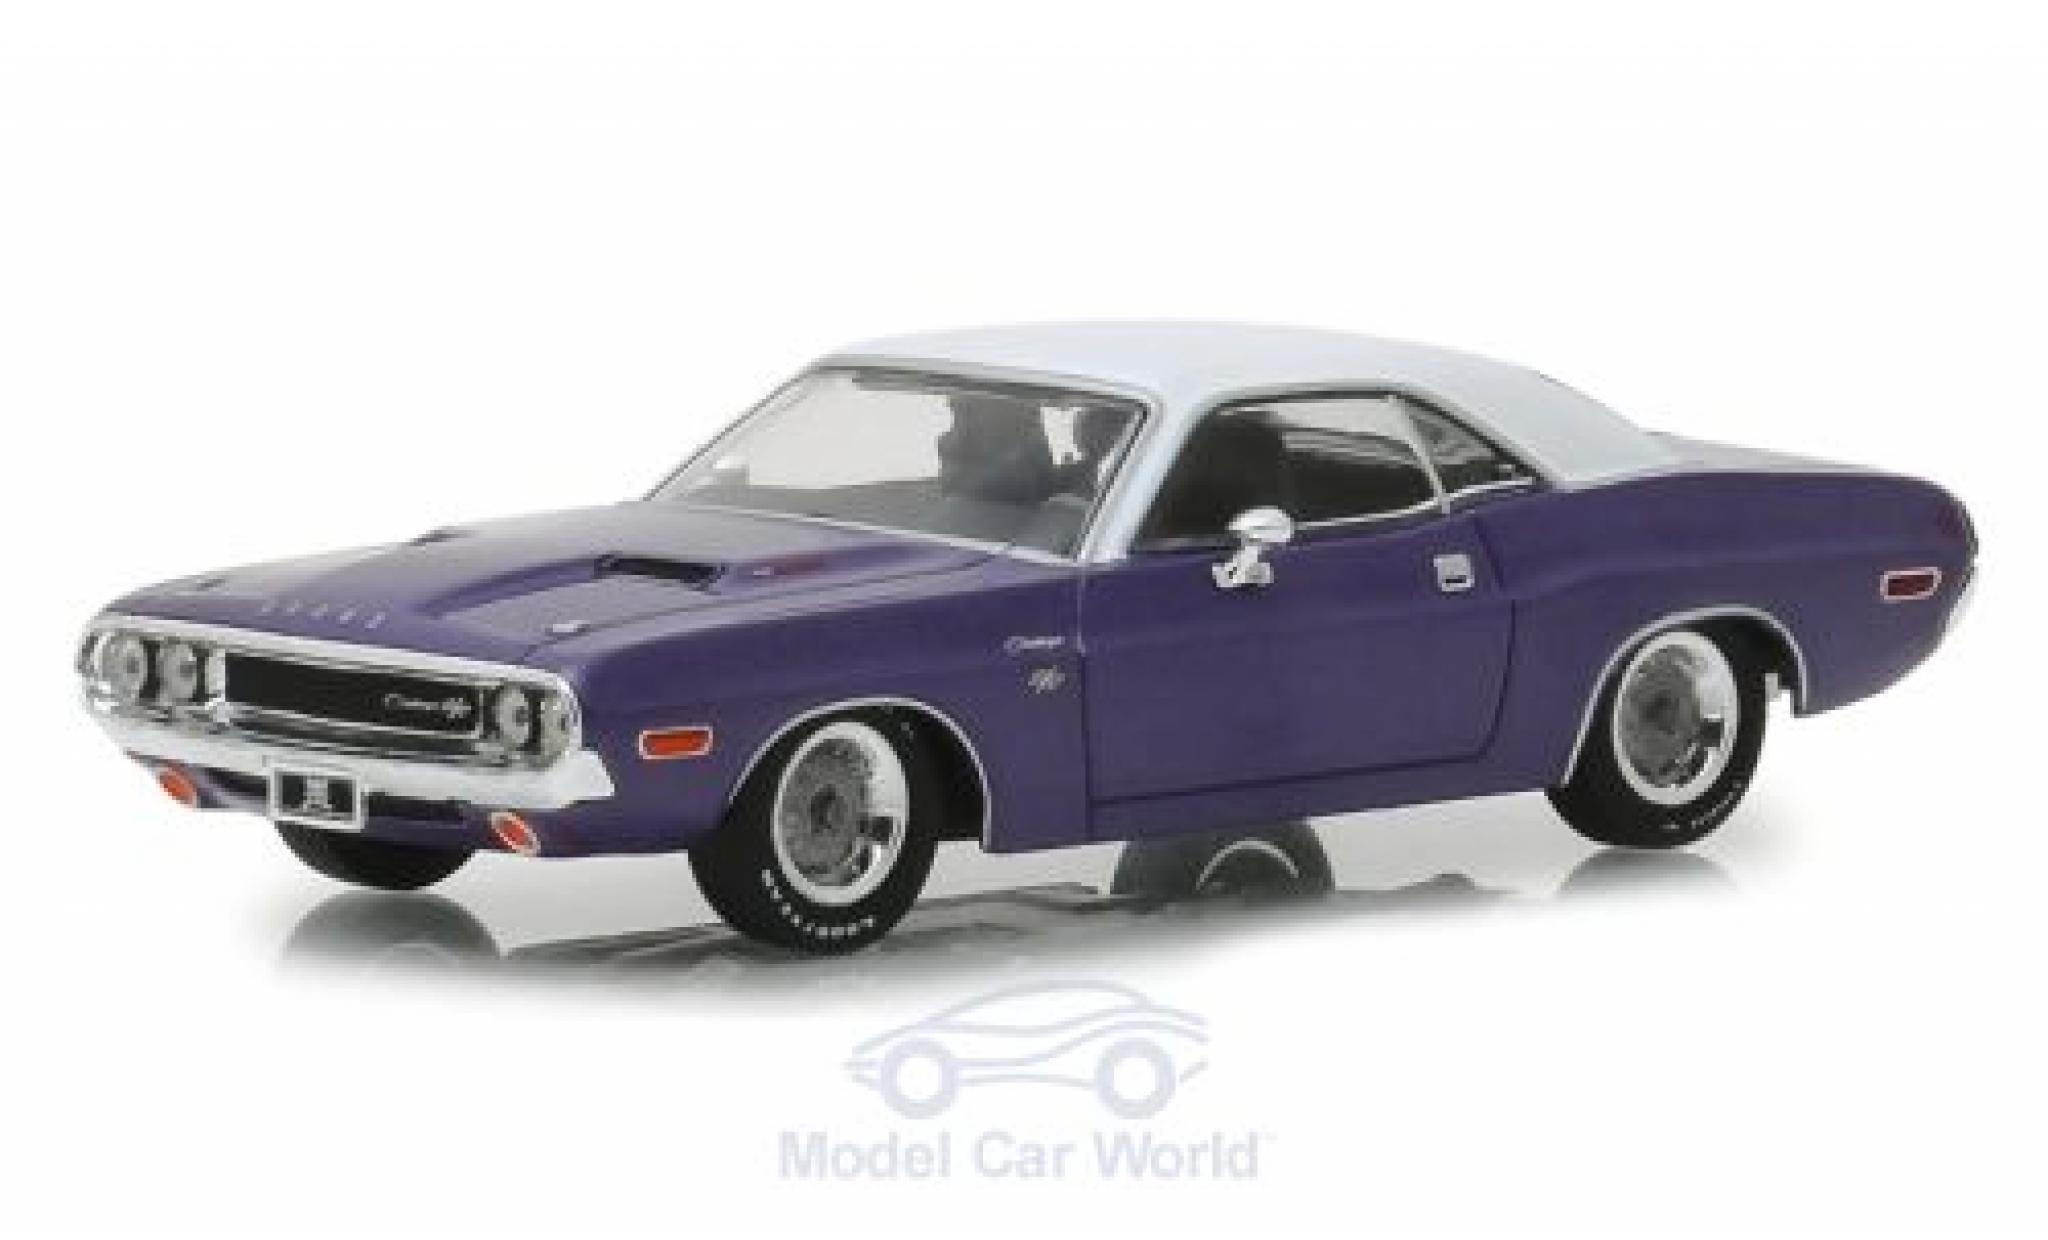 Dodge Challenger 1/43 Greenlight R/T metallic purple/white Graveyard Carz 1970